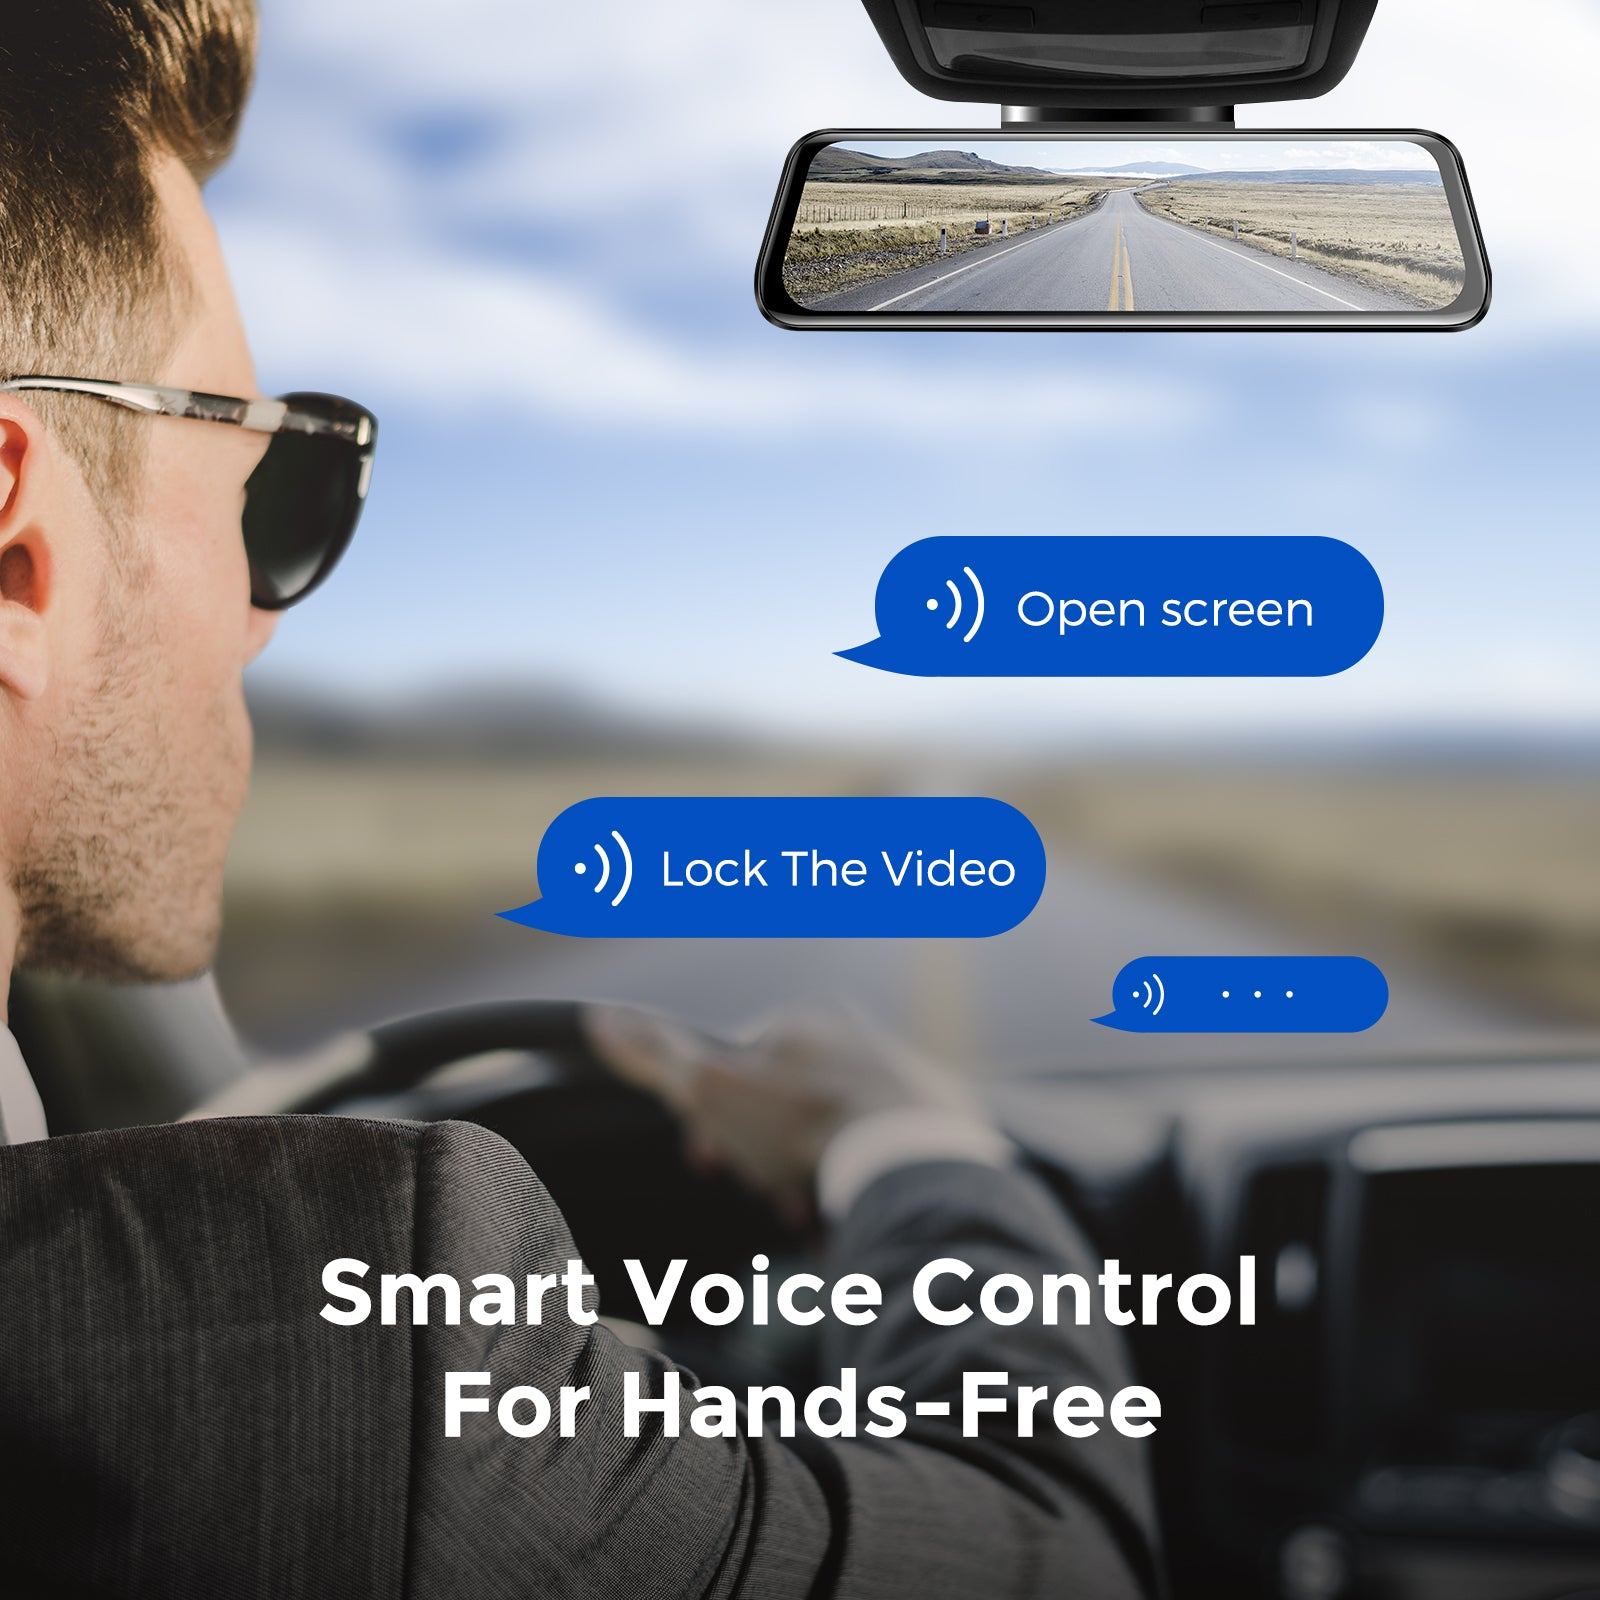 AZDOME PG02S Smart Voice Control For Hands-Free